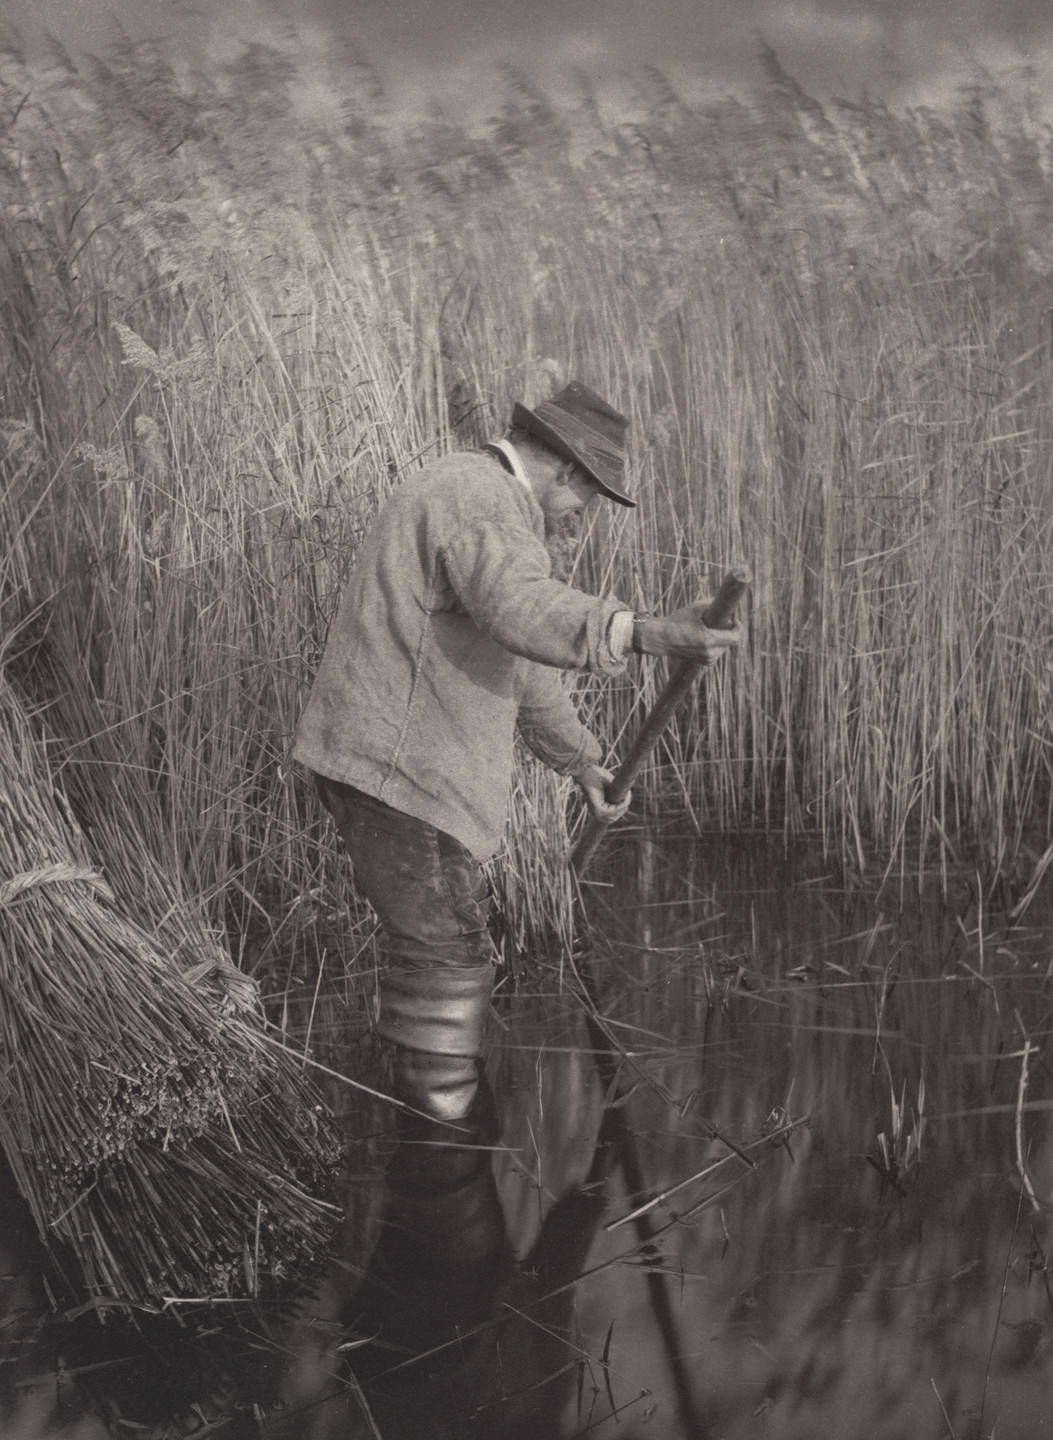 Peter Henry Emerson, T. F. Goodall. A Reed-Cutter at Work from Life and Landscape on the Norfolk Broads (London, 1886). c. 1885